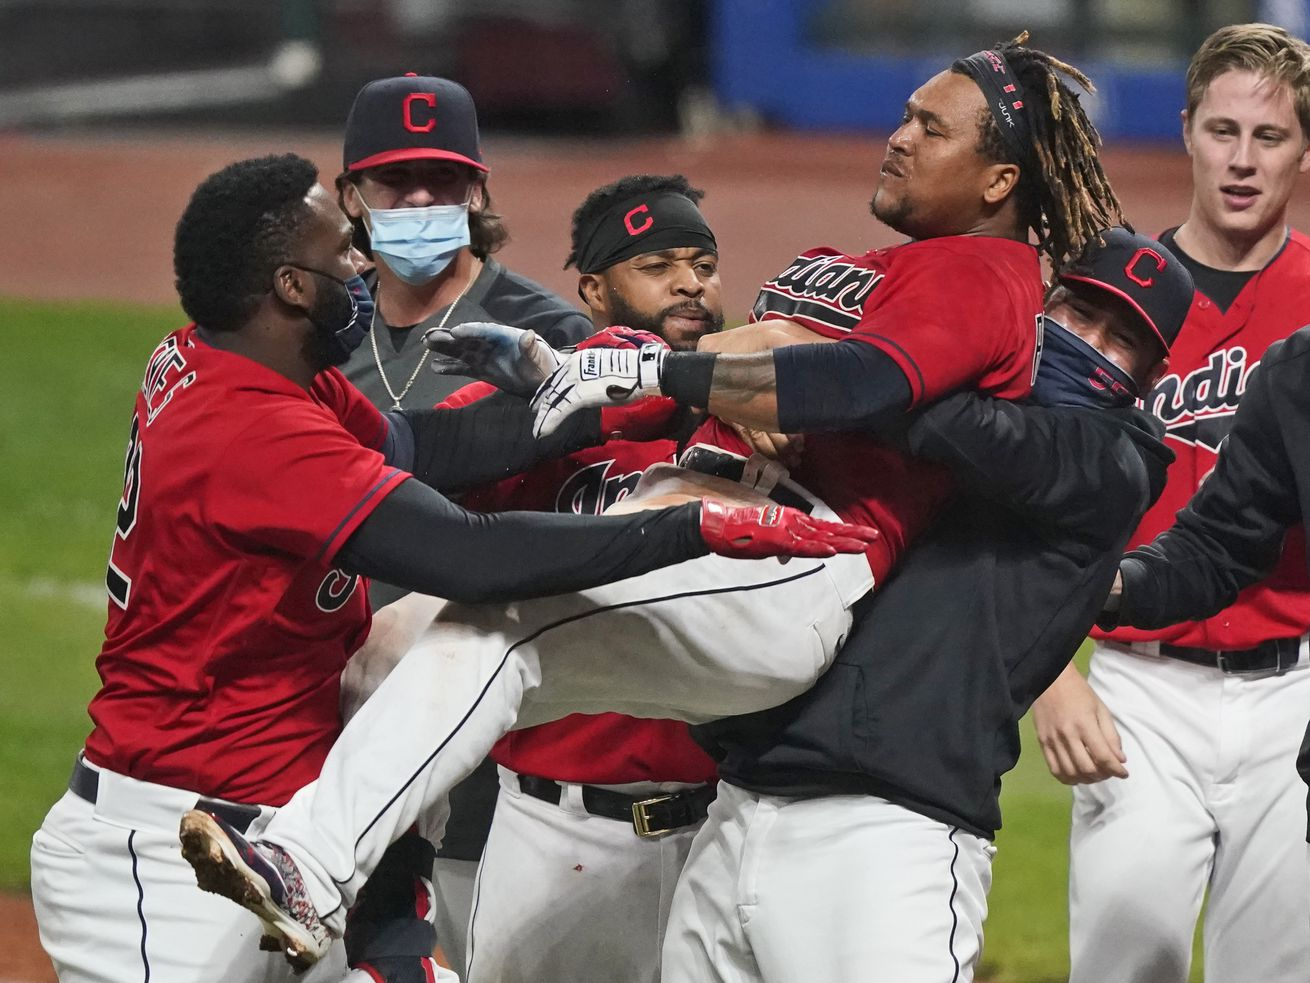 Indians deal White Sox crushing walk-off defeat in 10 innings